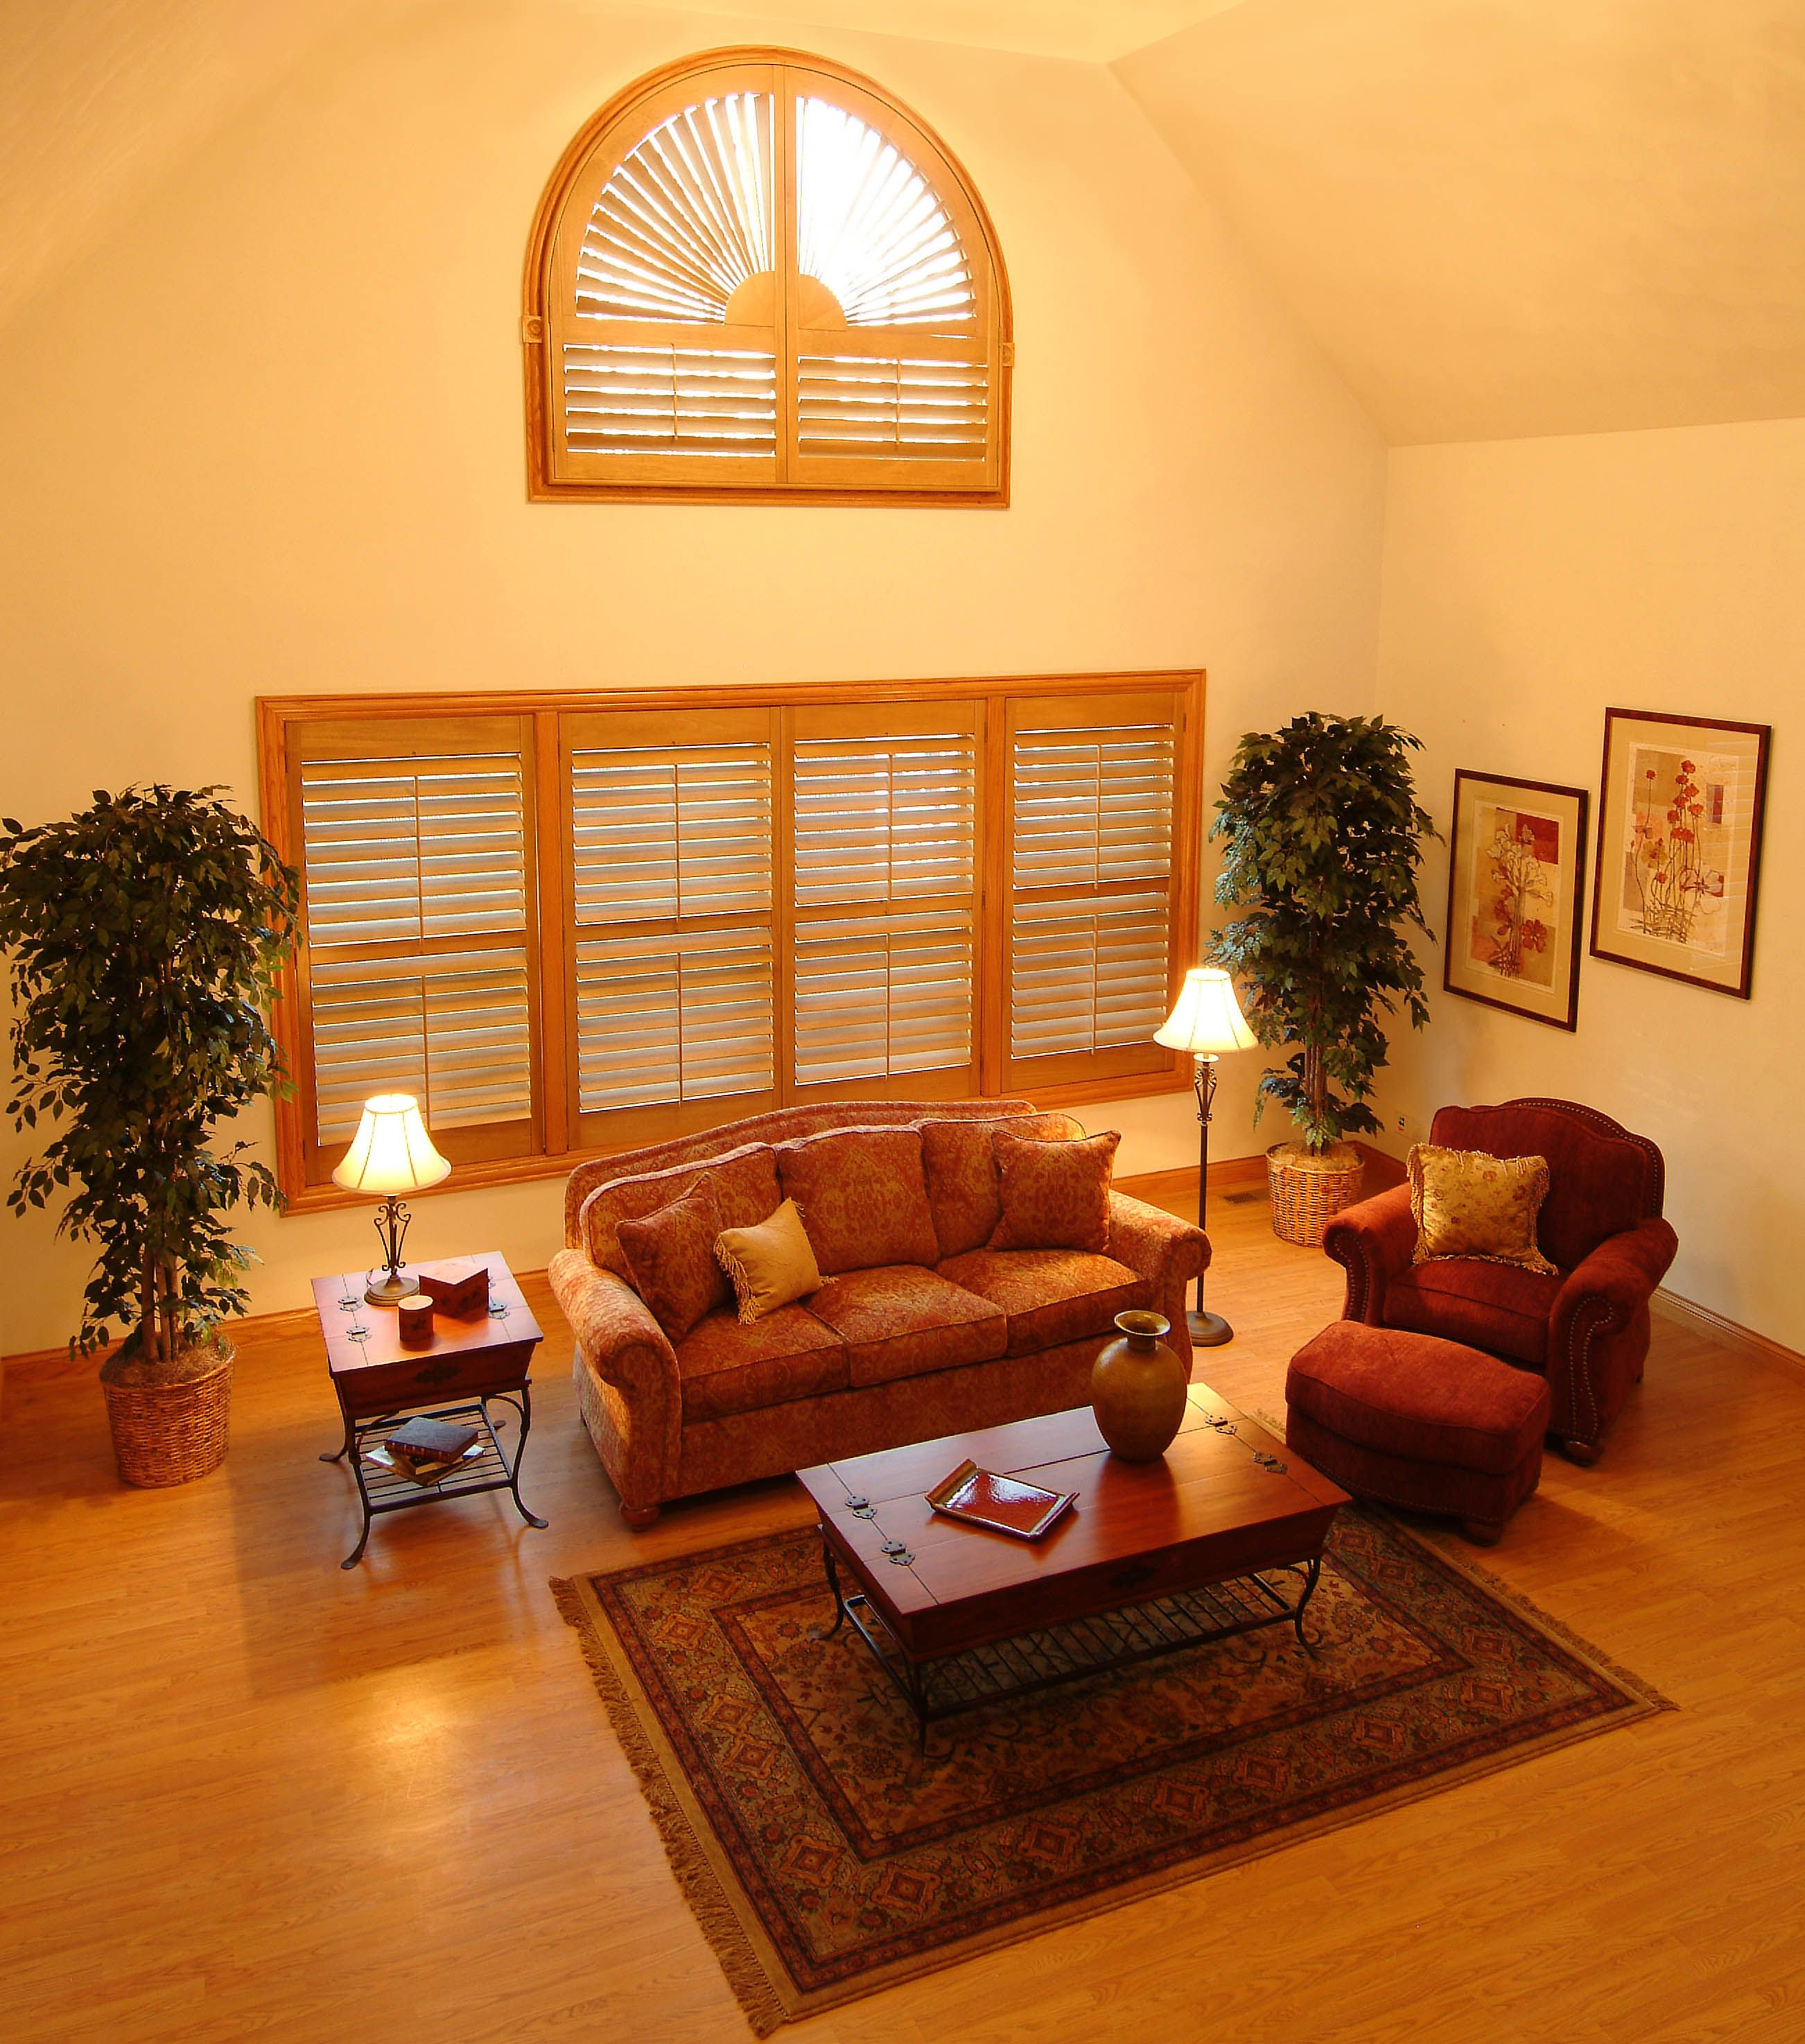 Pin On Shutters #plantation #shutters #living #room